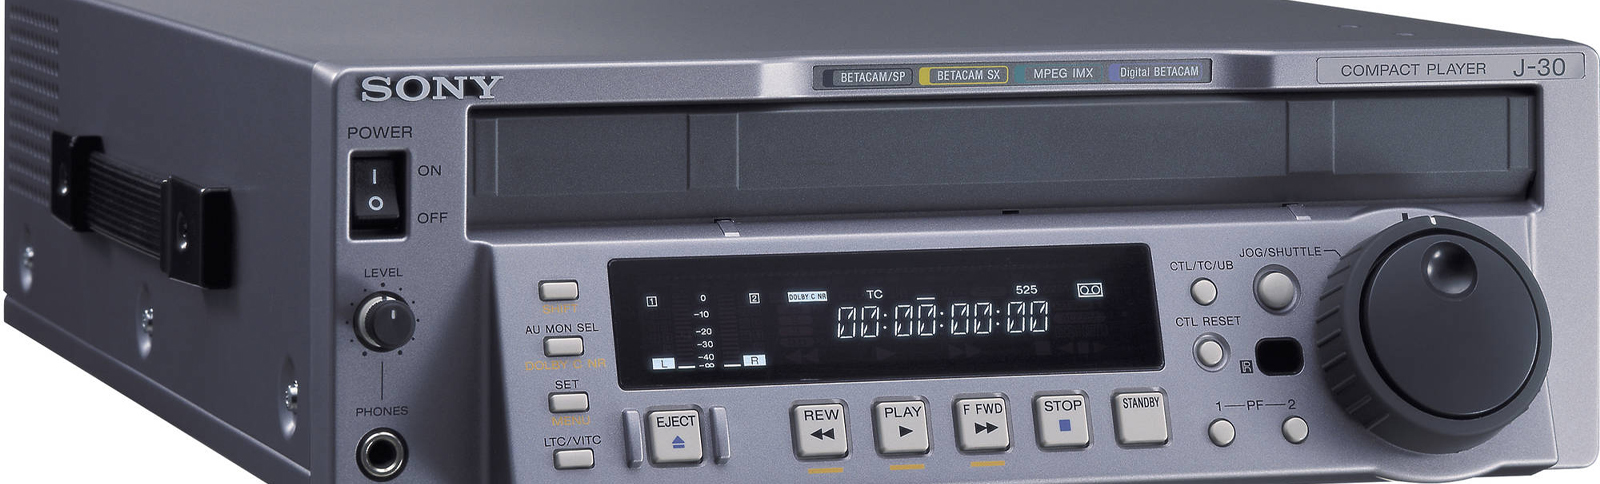 Betacam Transfers Broadcast Tapes